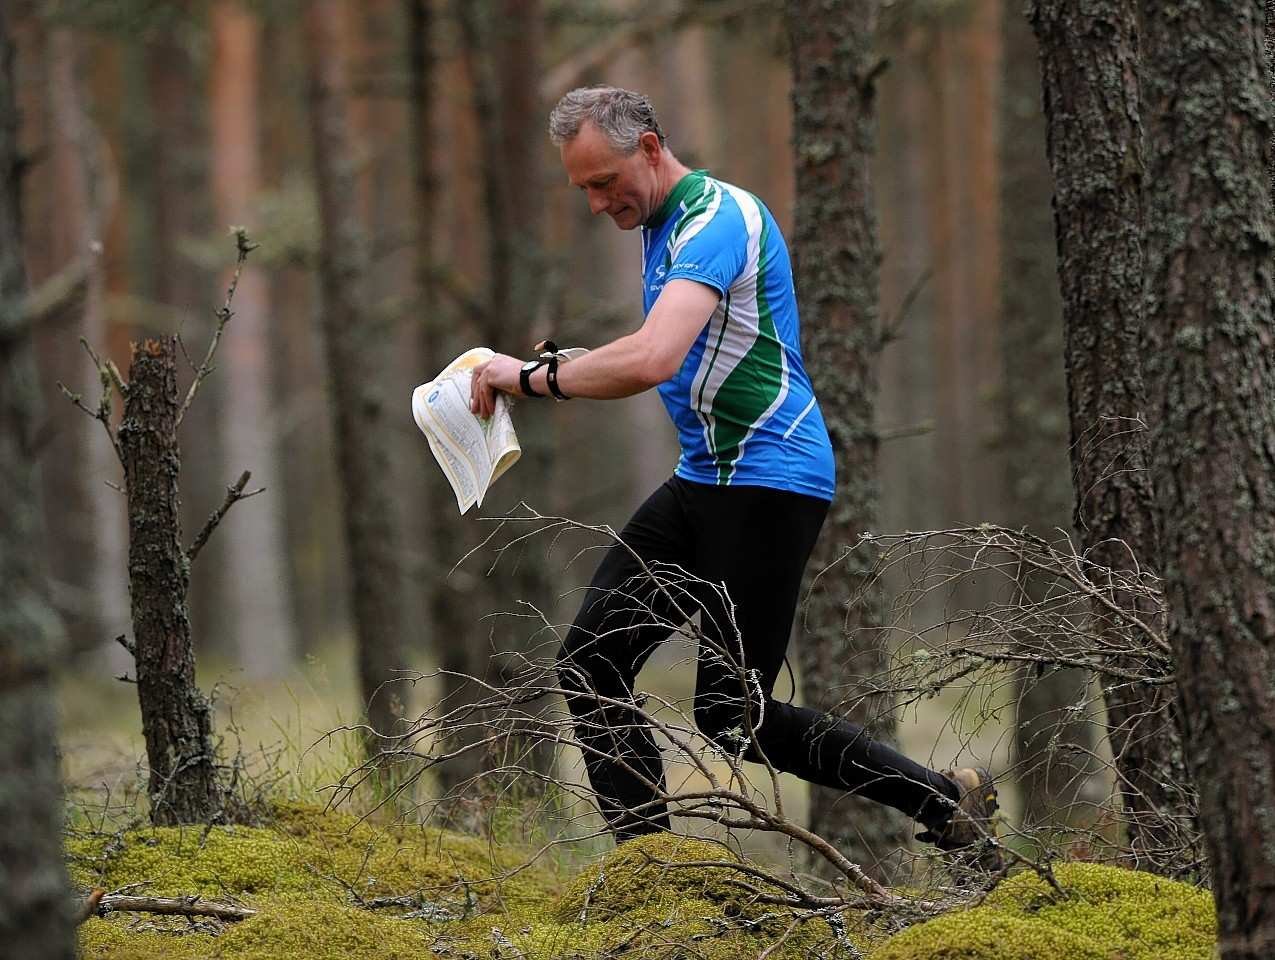 The World Orienteering Championships helped generate more than £9million economically